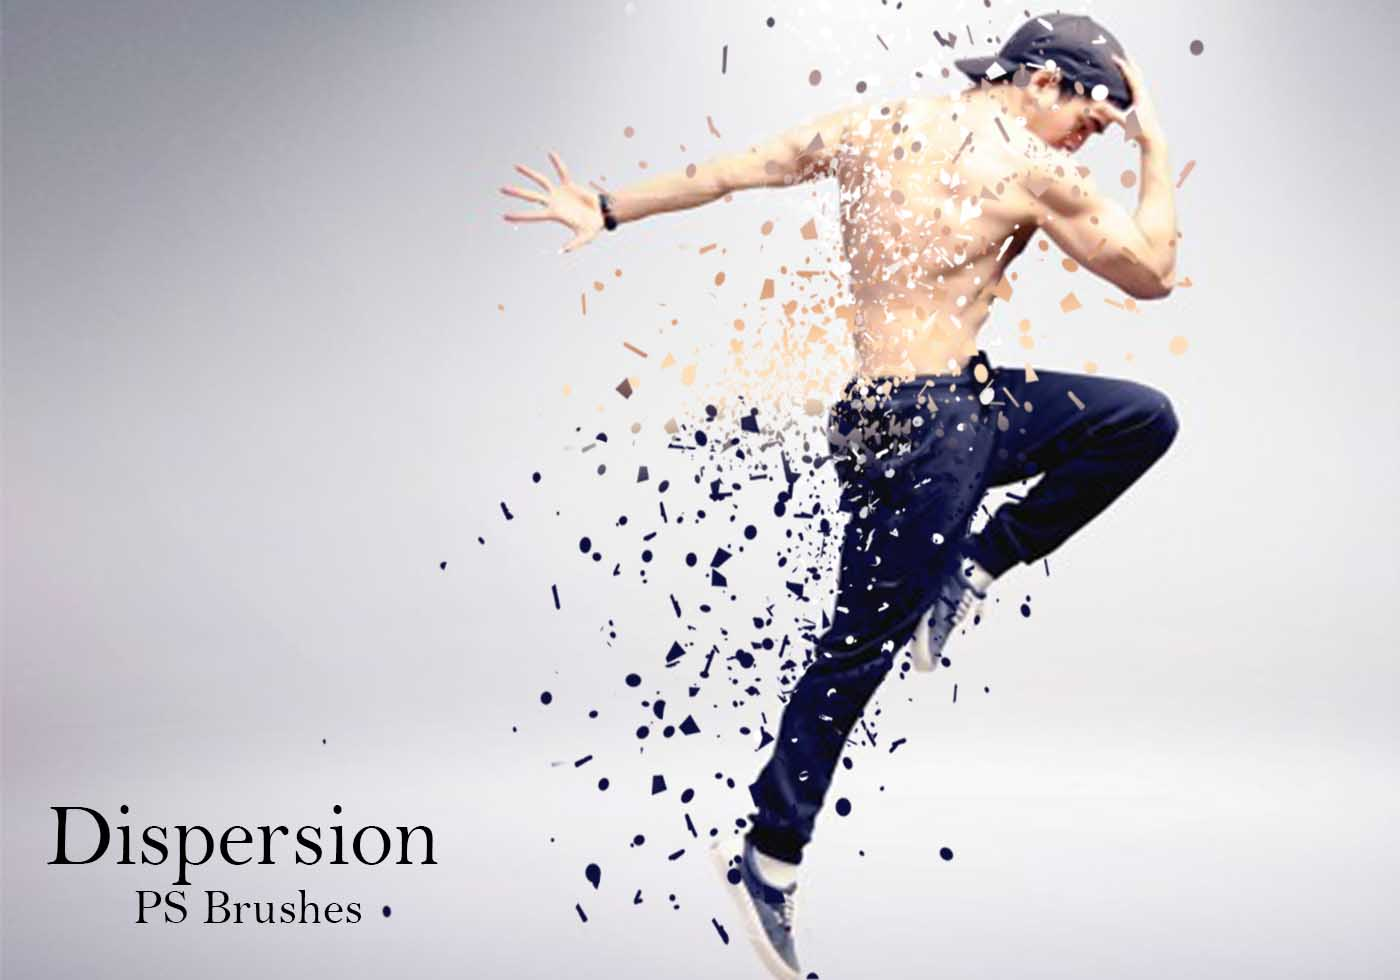 dispersion action photoshop cs6 free download